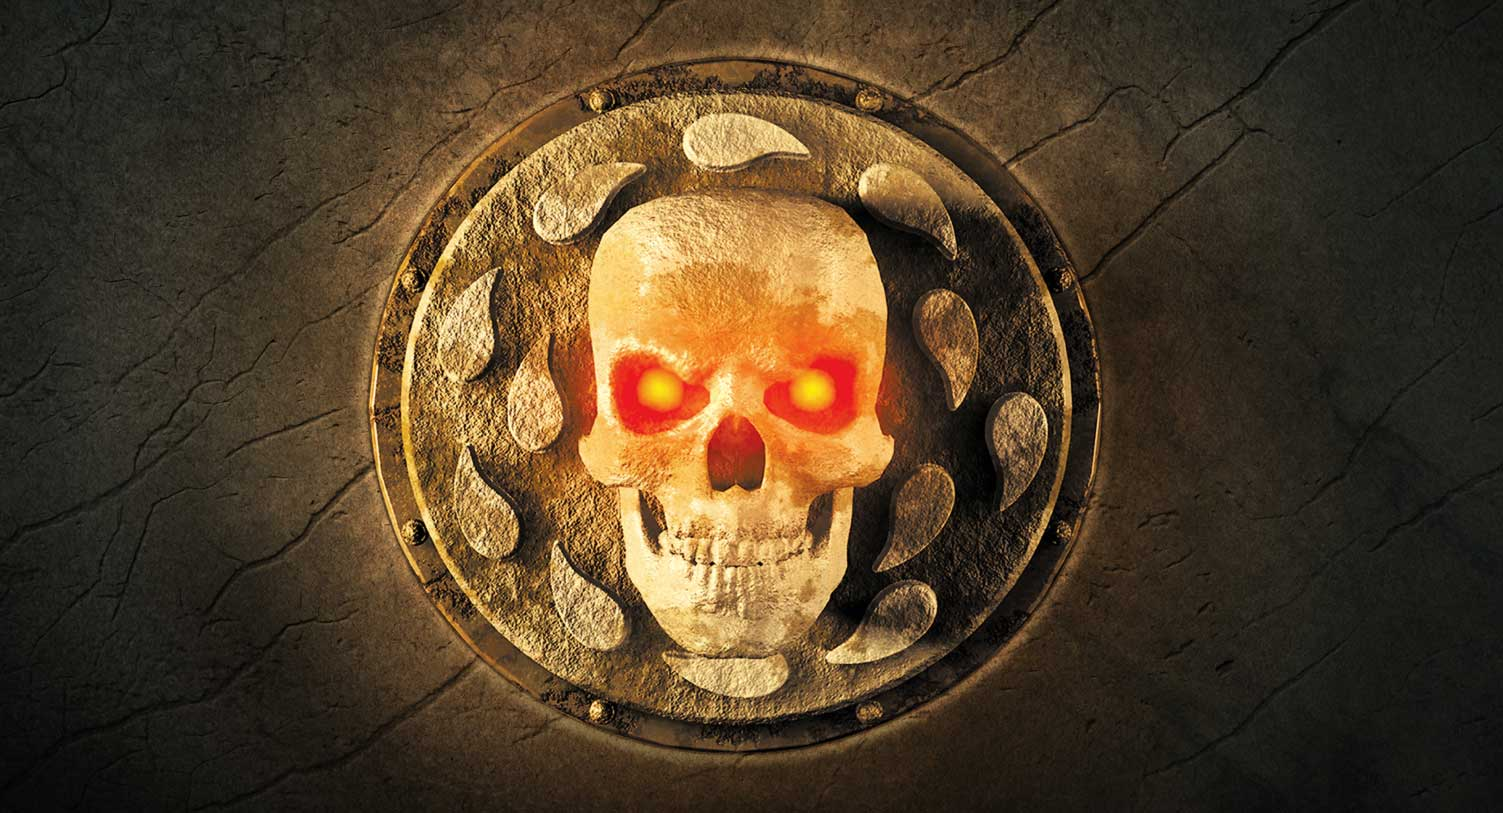 The legend of the RPG genre is back. The first fans will play Baldur's Gate 3 this year